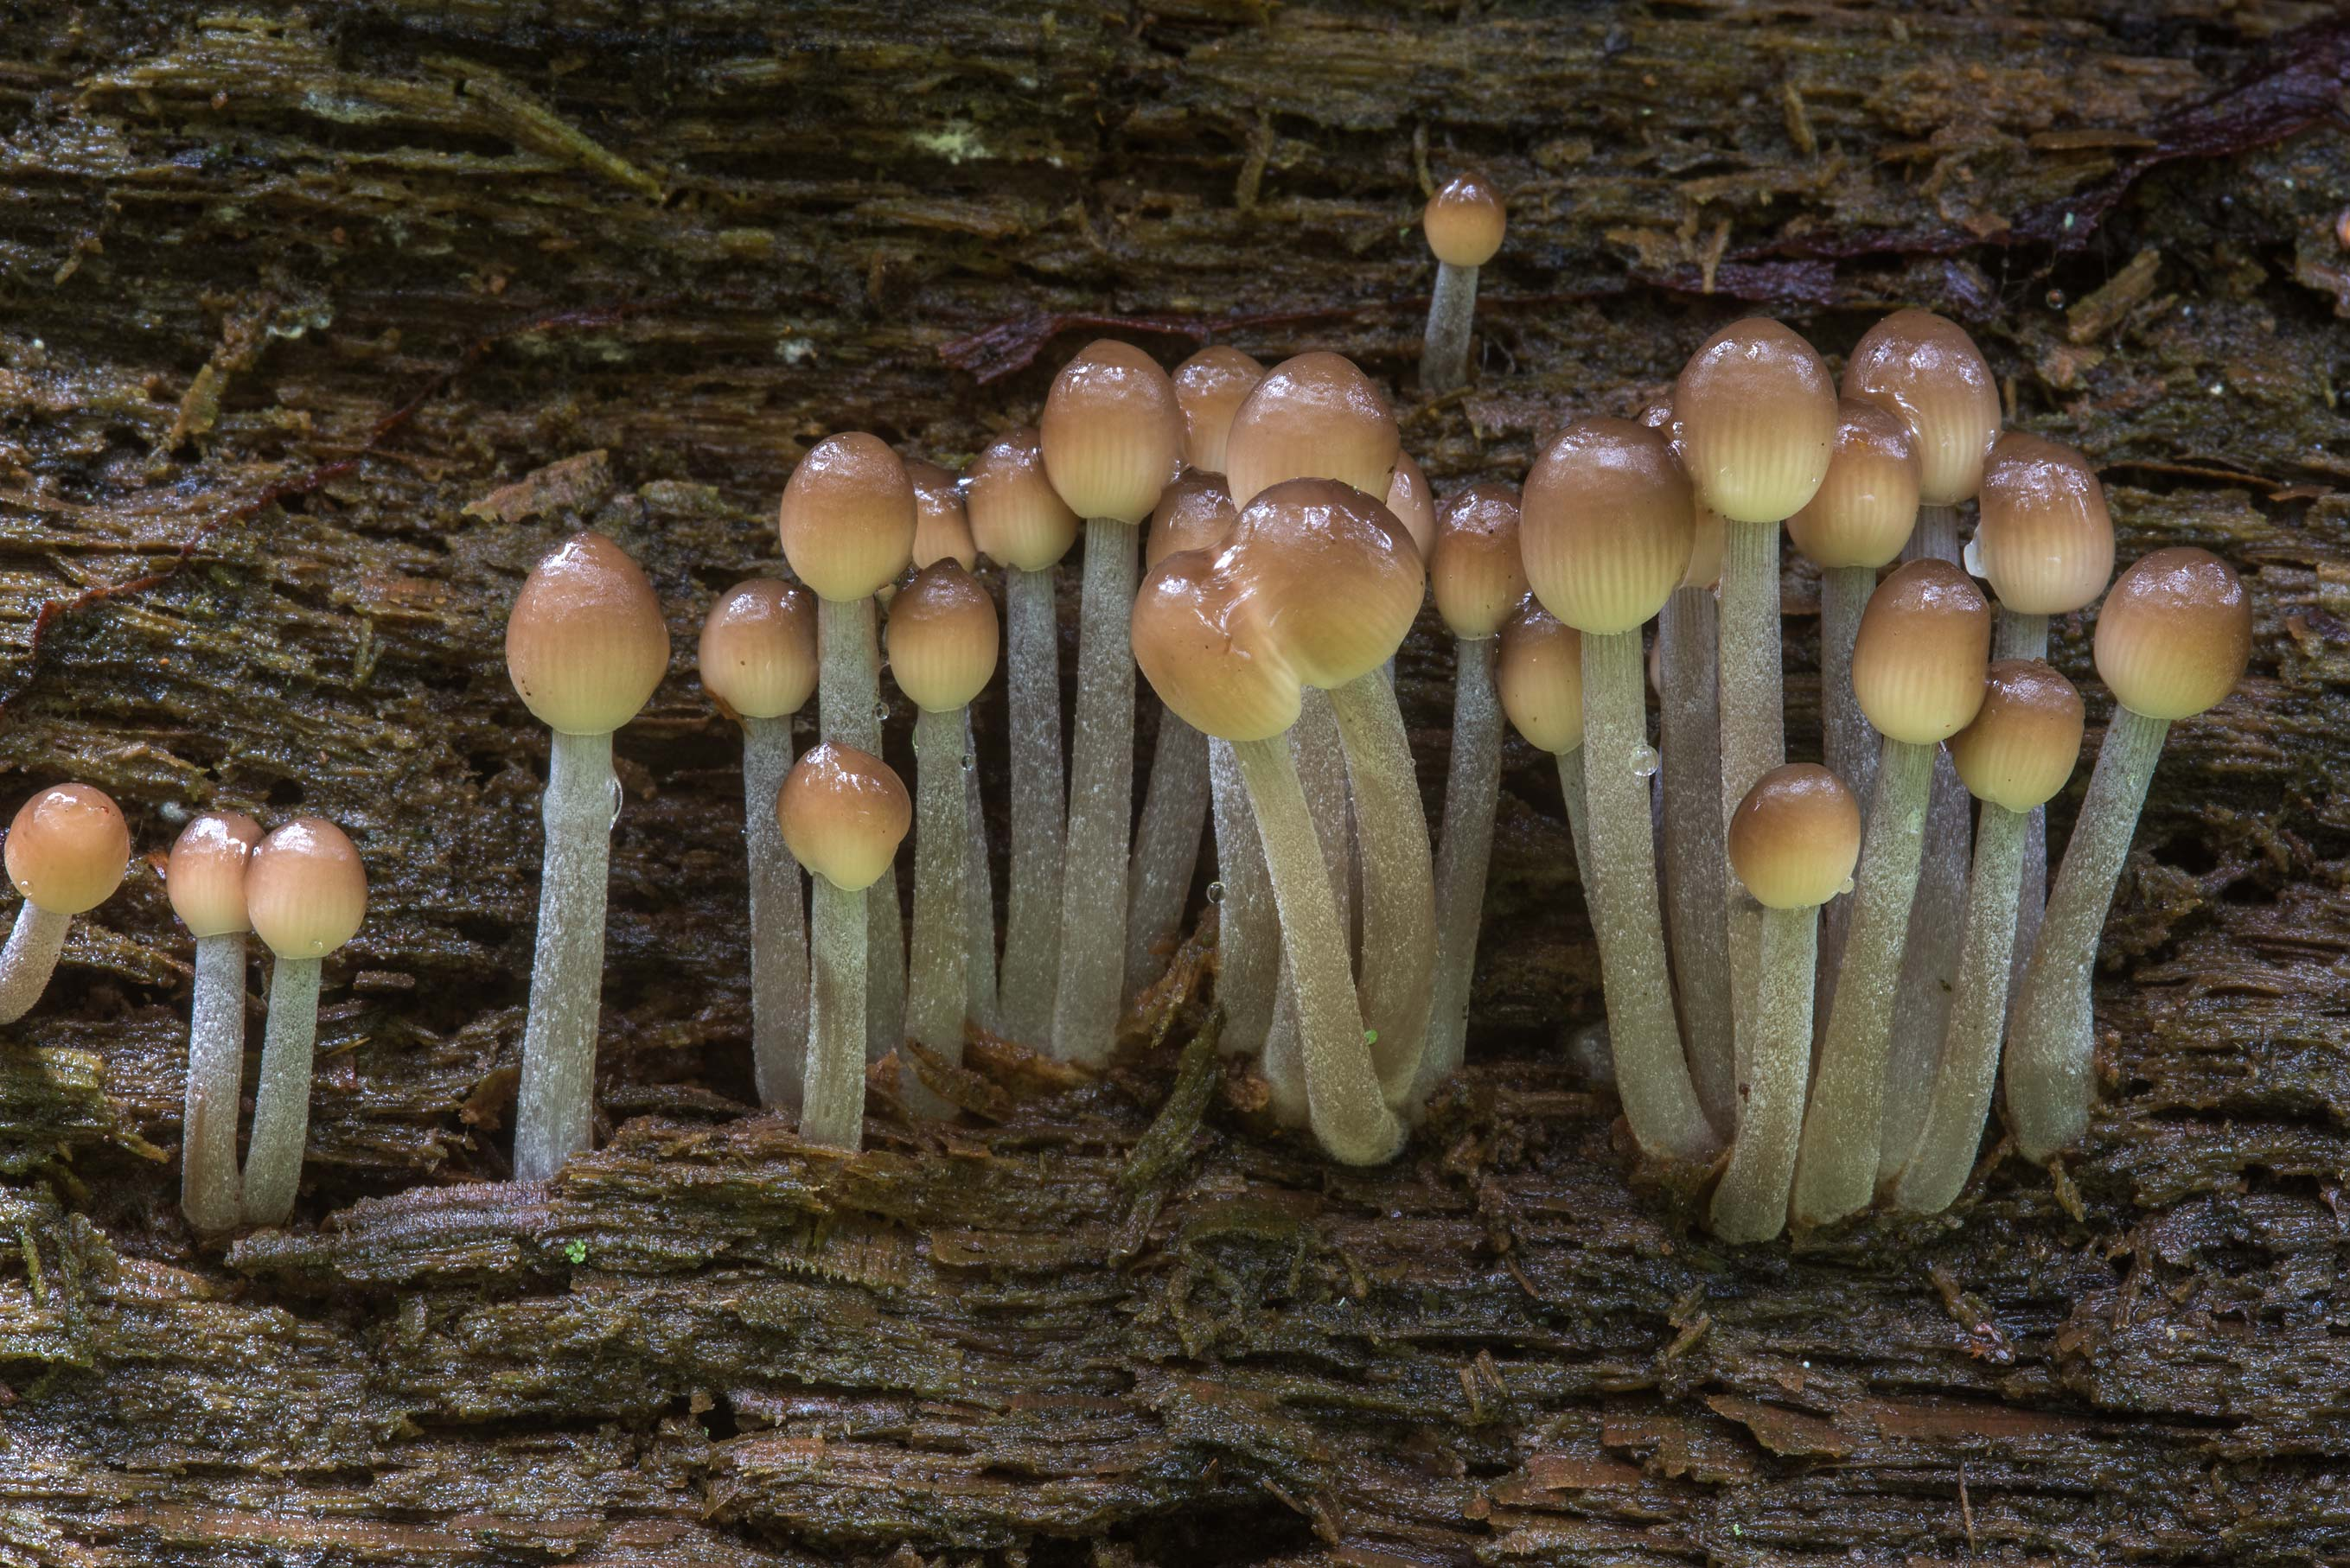 Immature clustered bonnet mushrooms (Mycena...Nos. West from St.Petersburg, Russia